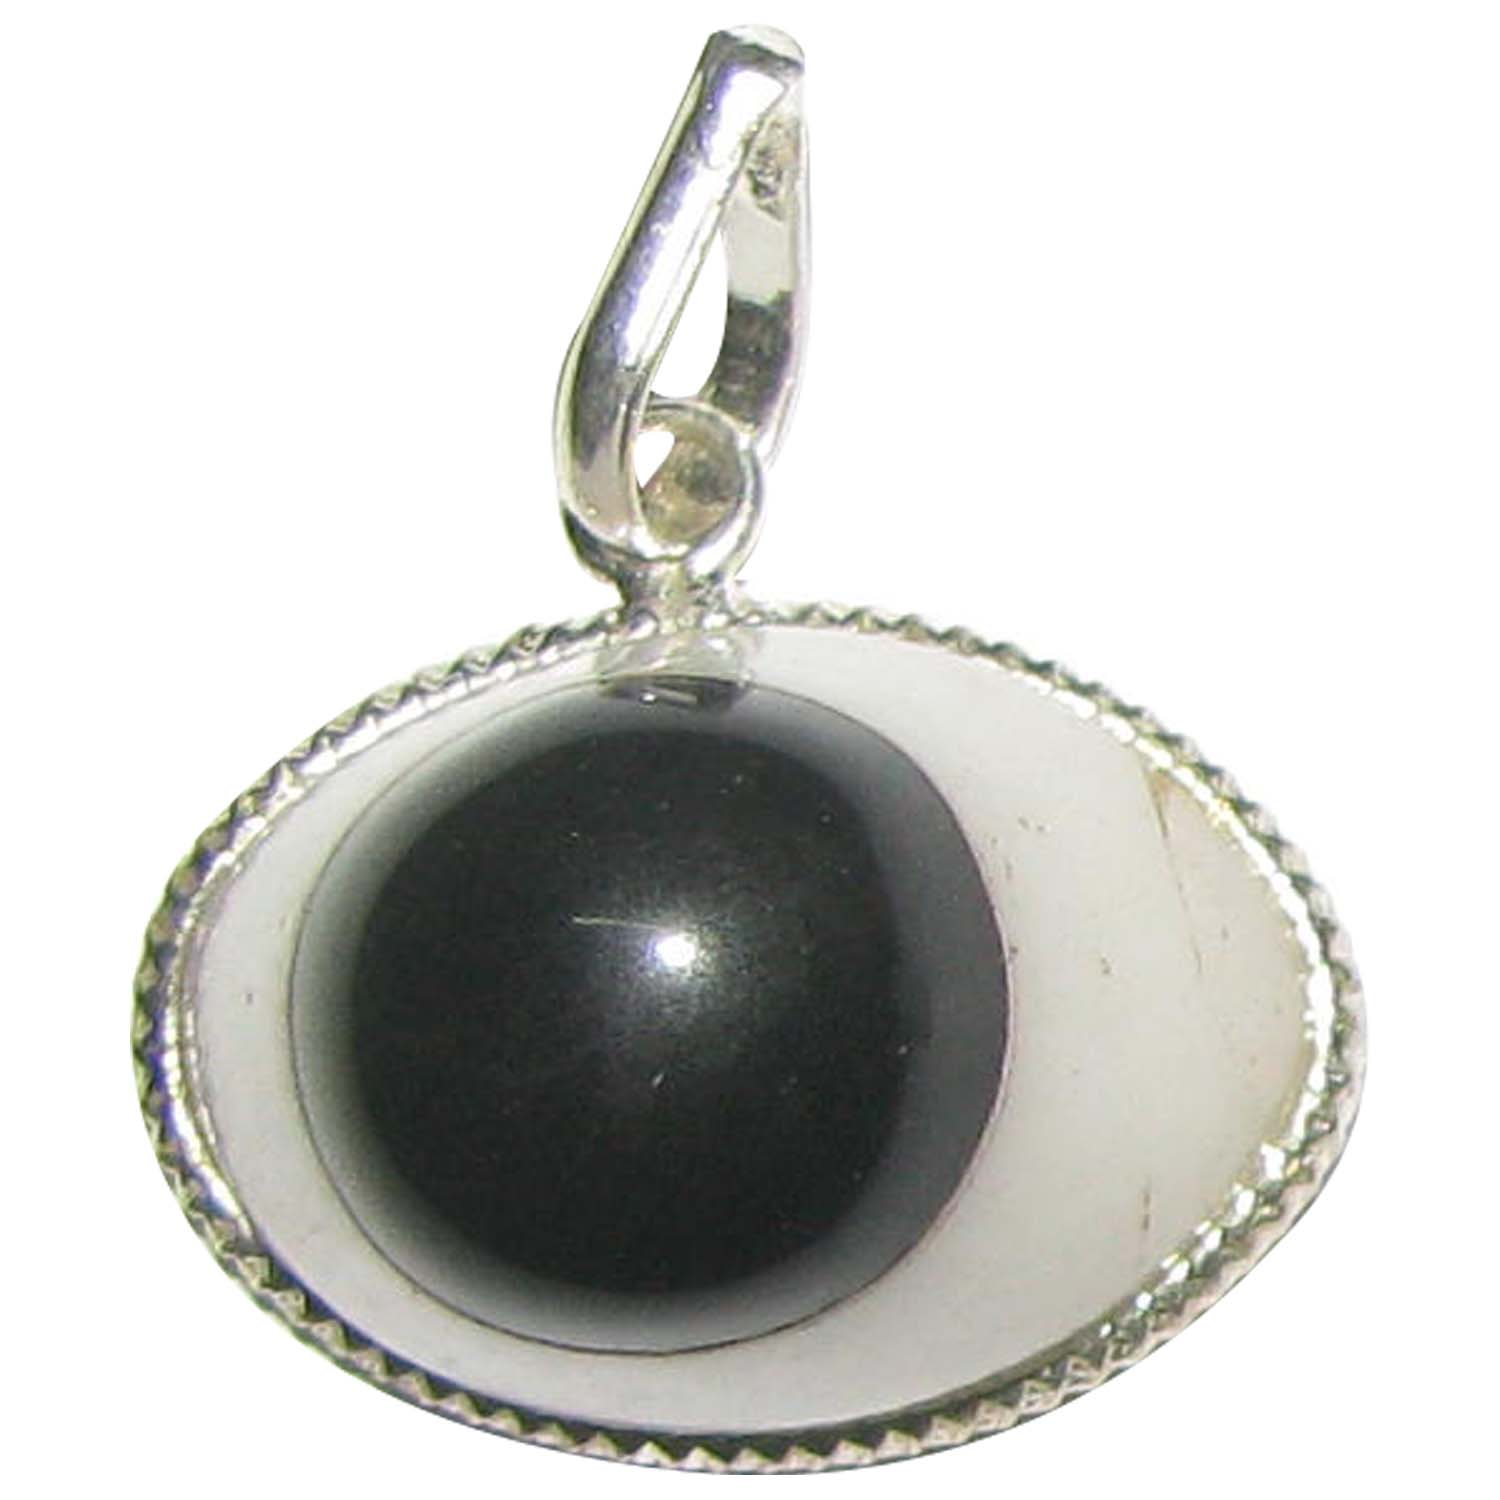 Chennai healing crystals natural agate eye crystal pendant for natural agate eye crystal pendant for protection against evil eye a1791 aloadofball Image collections